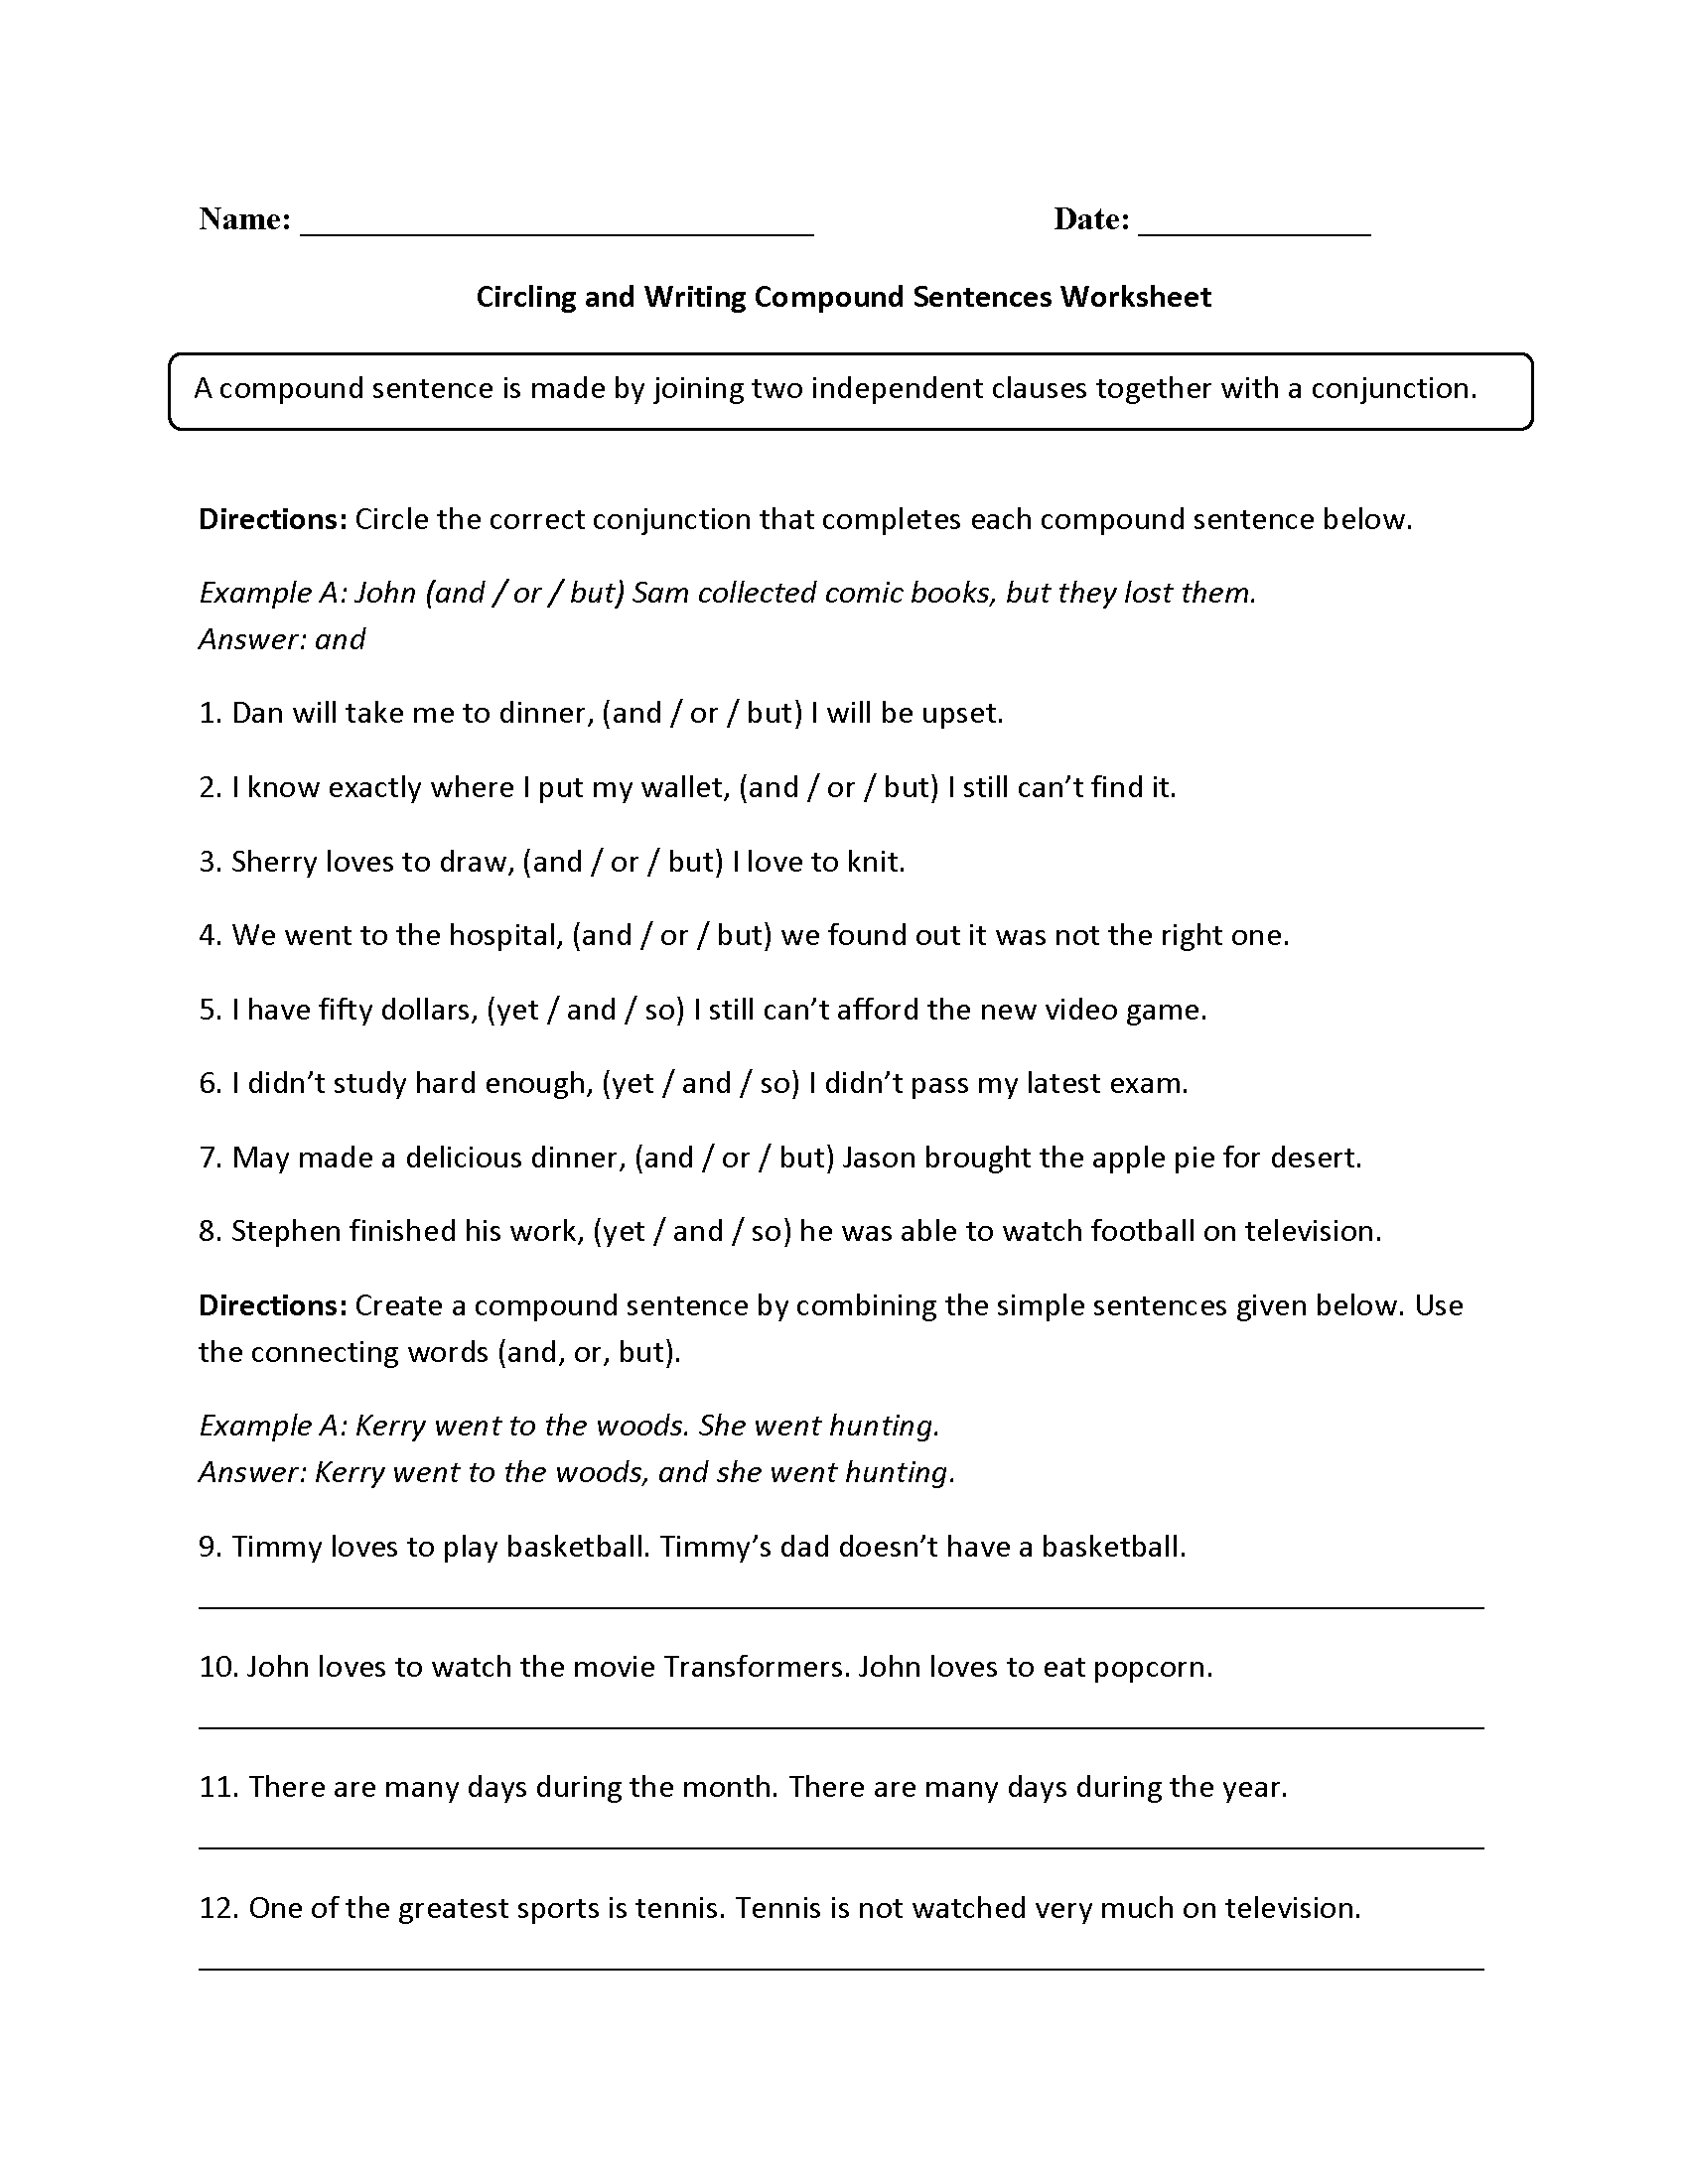 Worksheets Four Kinds Of Sentences Worksheets circling and writing compound sentences worksheet worksheet